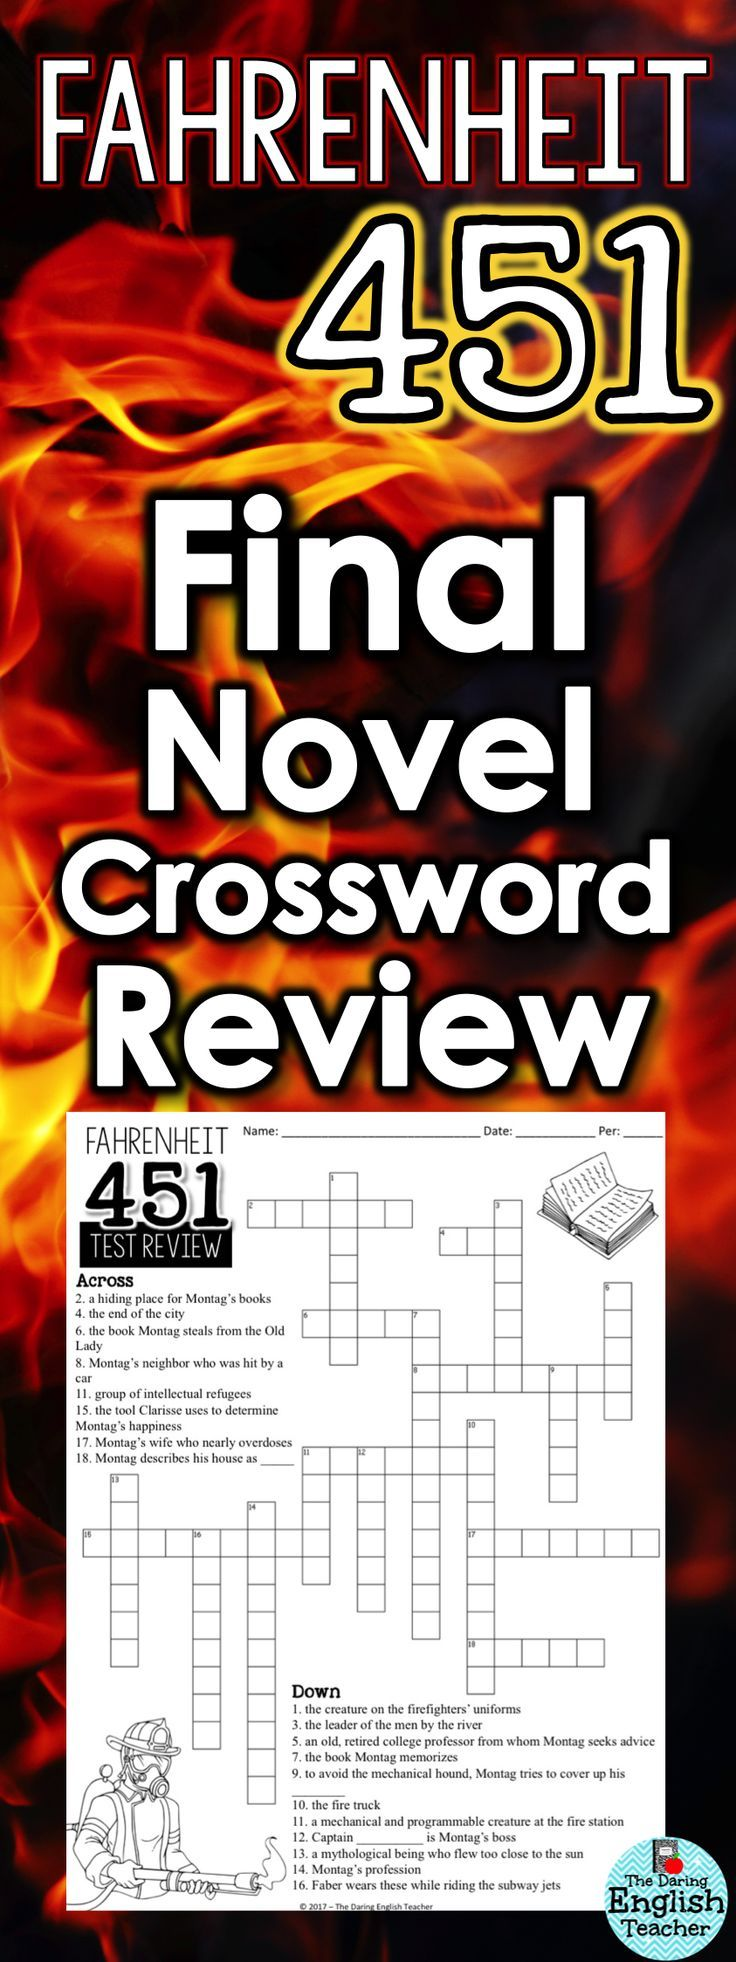 25 best ela 8th fahrenheit 451 module images on pinterest fahrenheit 451 review crossword puzzle with answer key fandeluxe Images